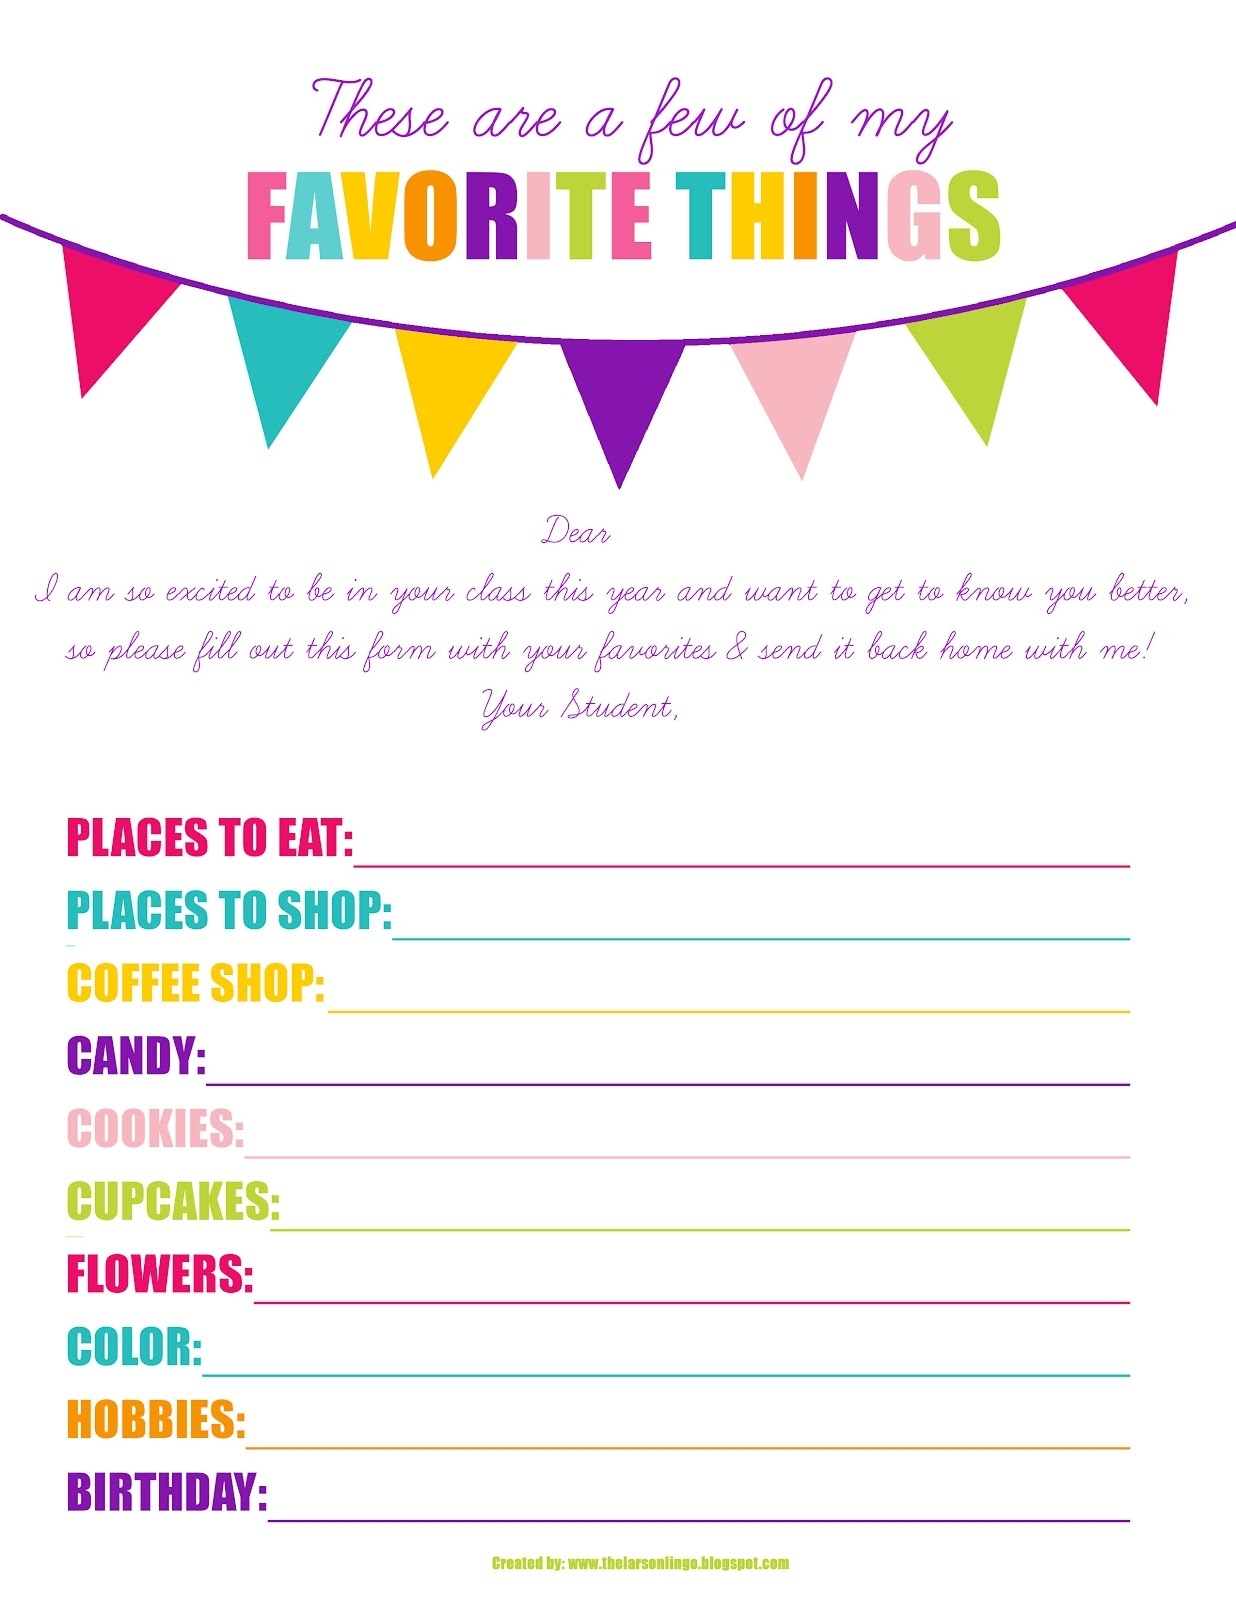 29 Images Of My Favorite Things Template | Helmettown inside A Few Of My Favorite Things Template